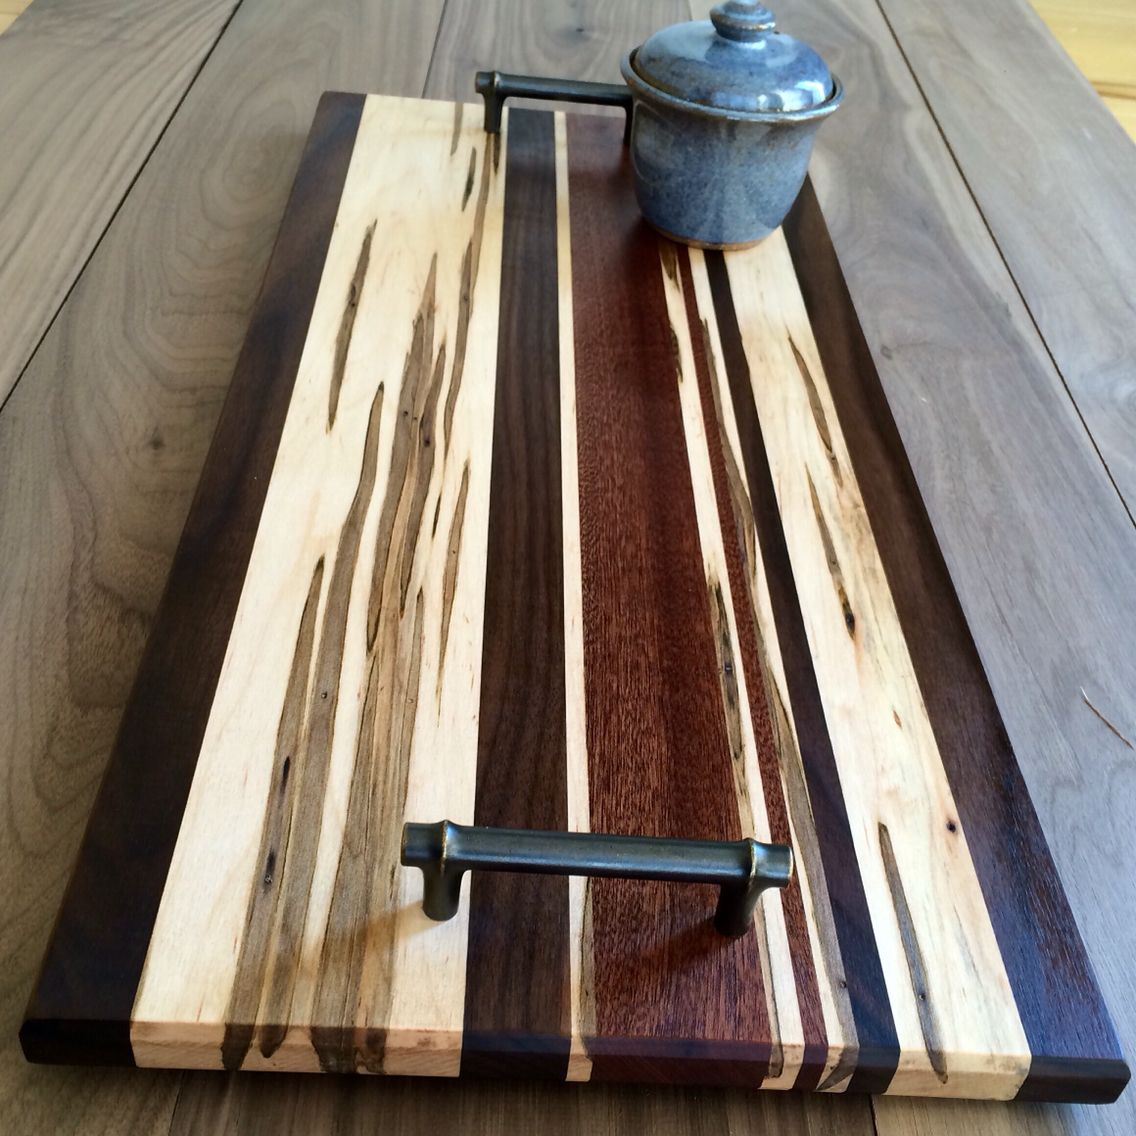 Graphic Tray Handcrafted From Ivory And: Serving Tray Made From Black Walnut, Ambrosia Maple, And